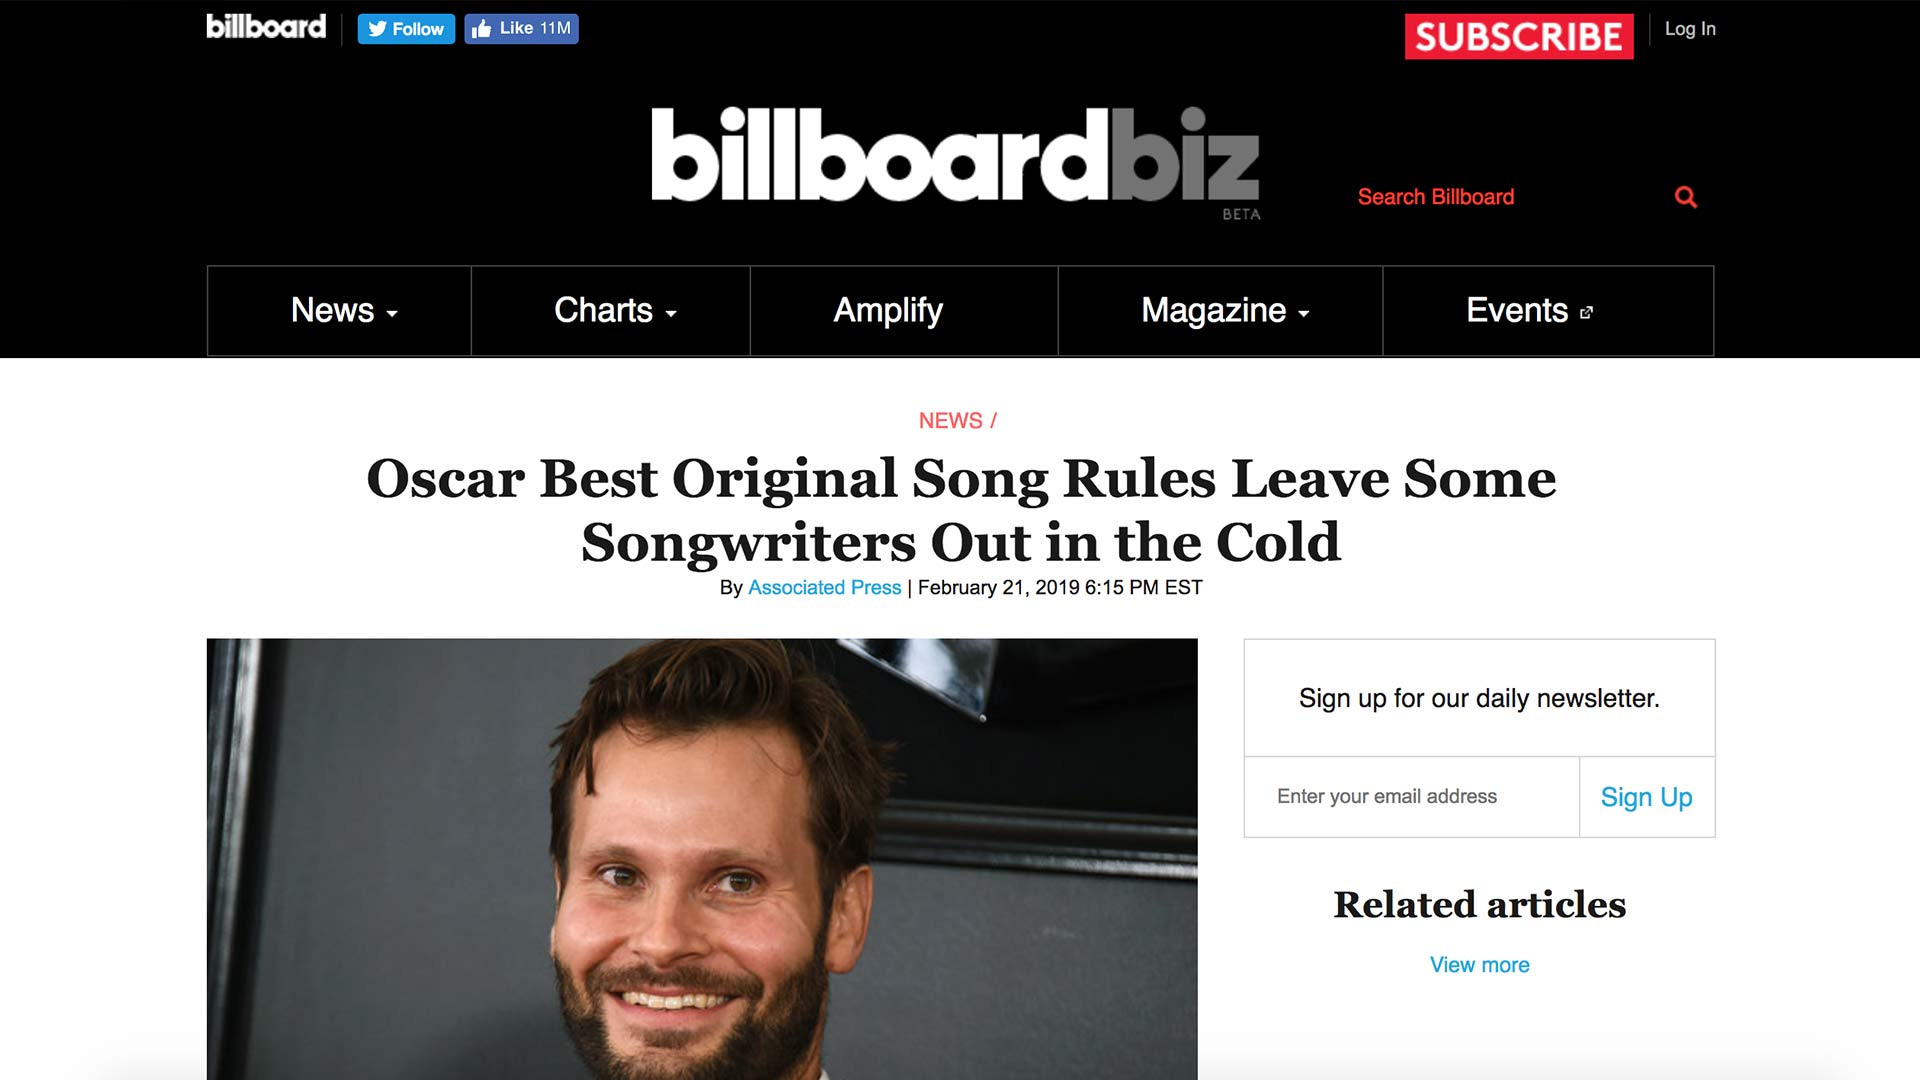 Fairness Rocks News Oscar Best Original Song Rules Leave Some Songwriters Out in the Cold